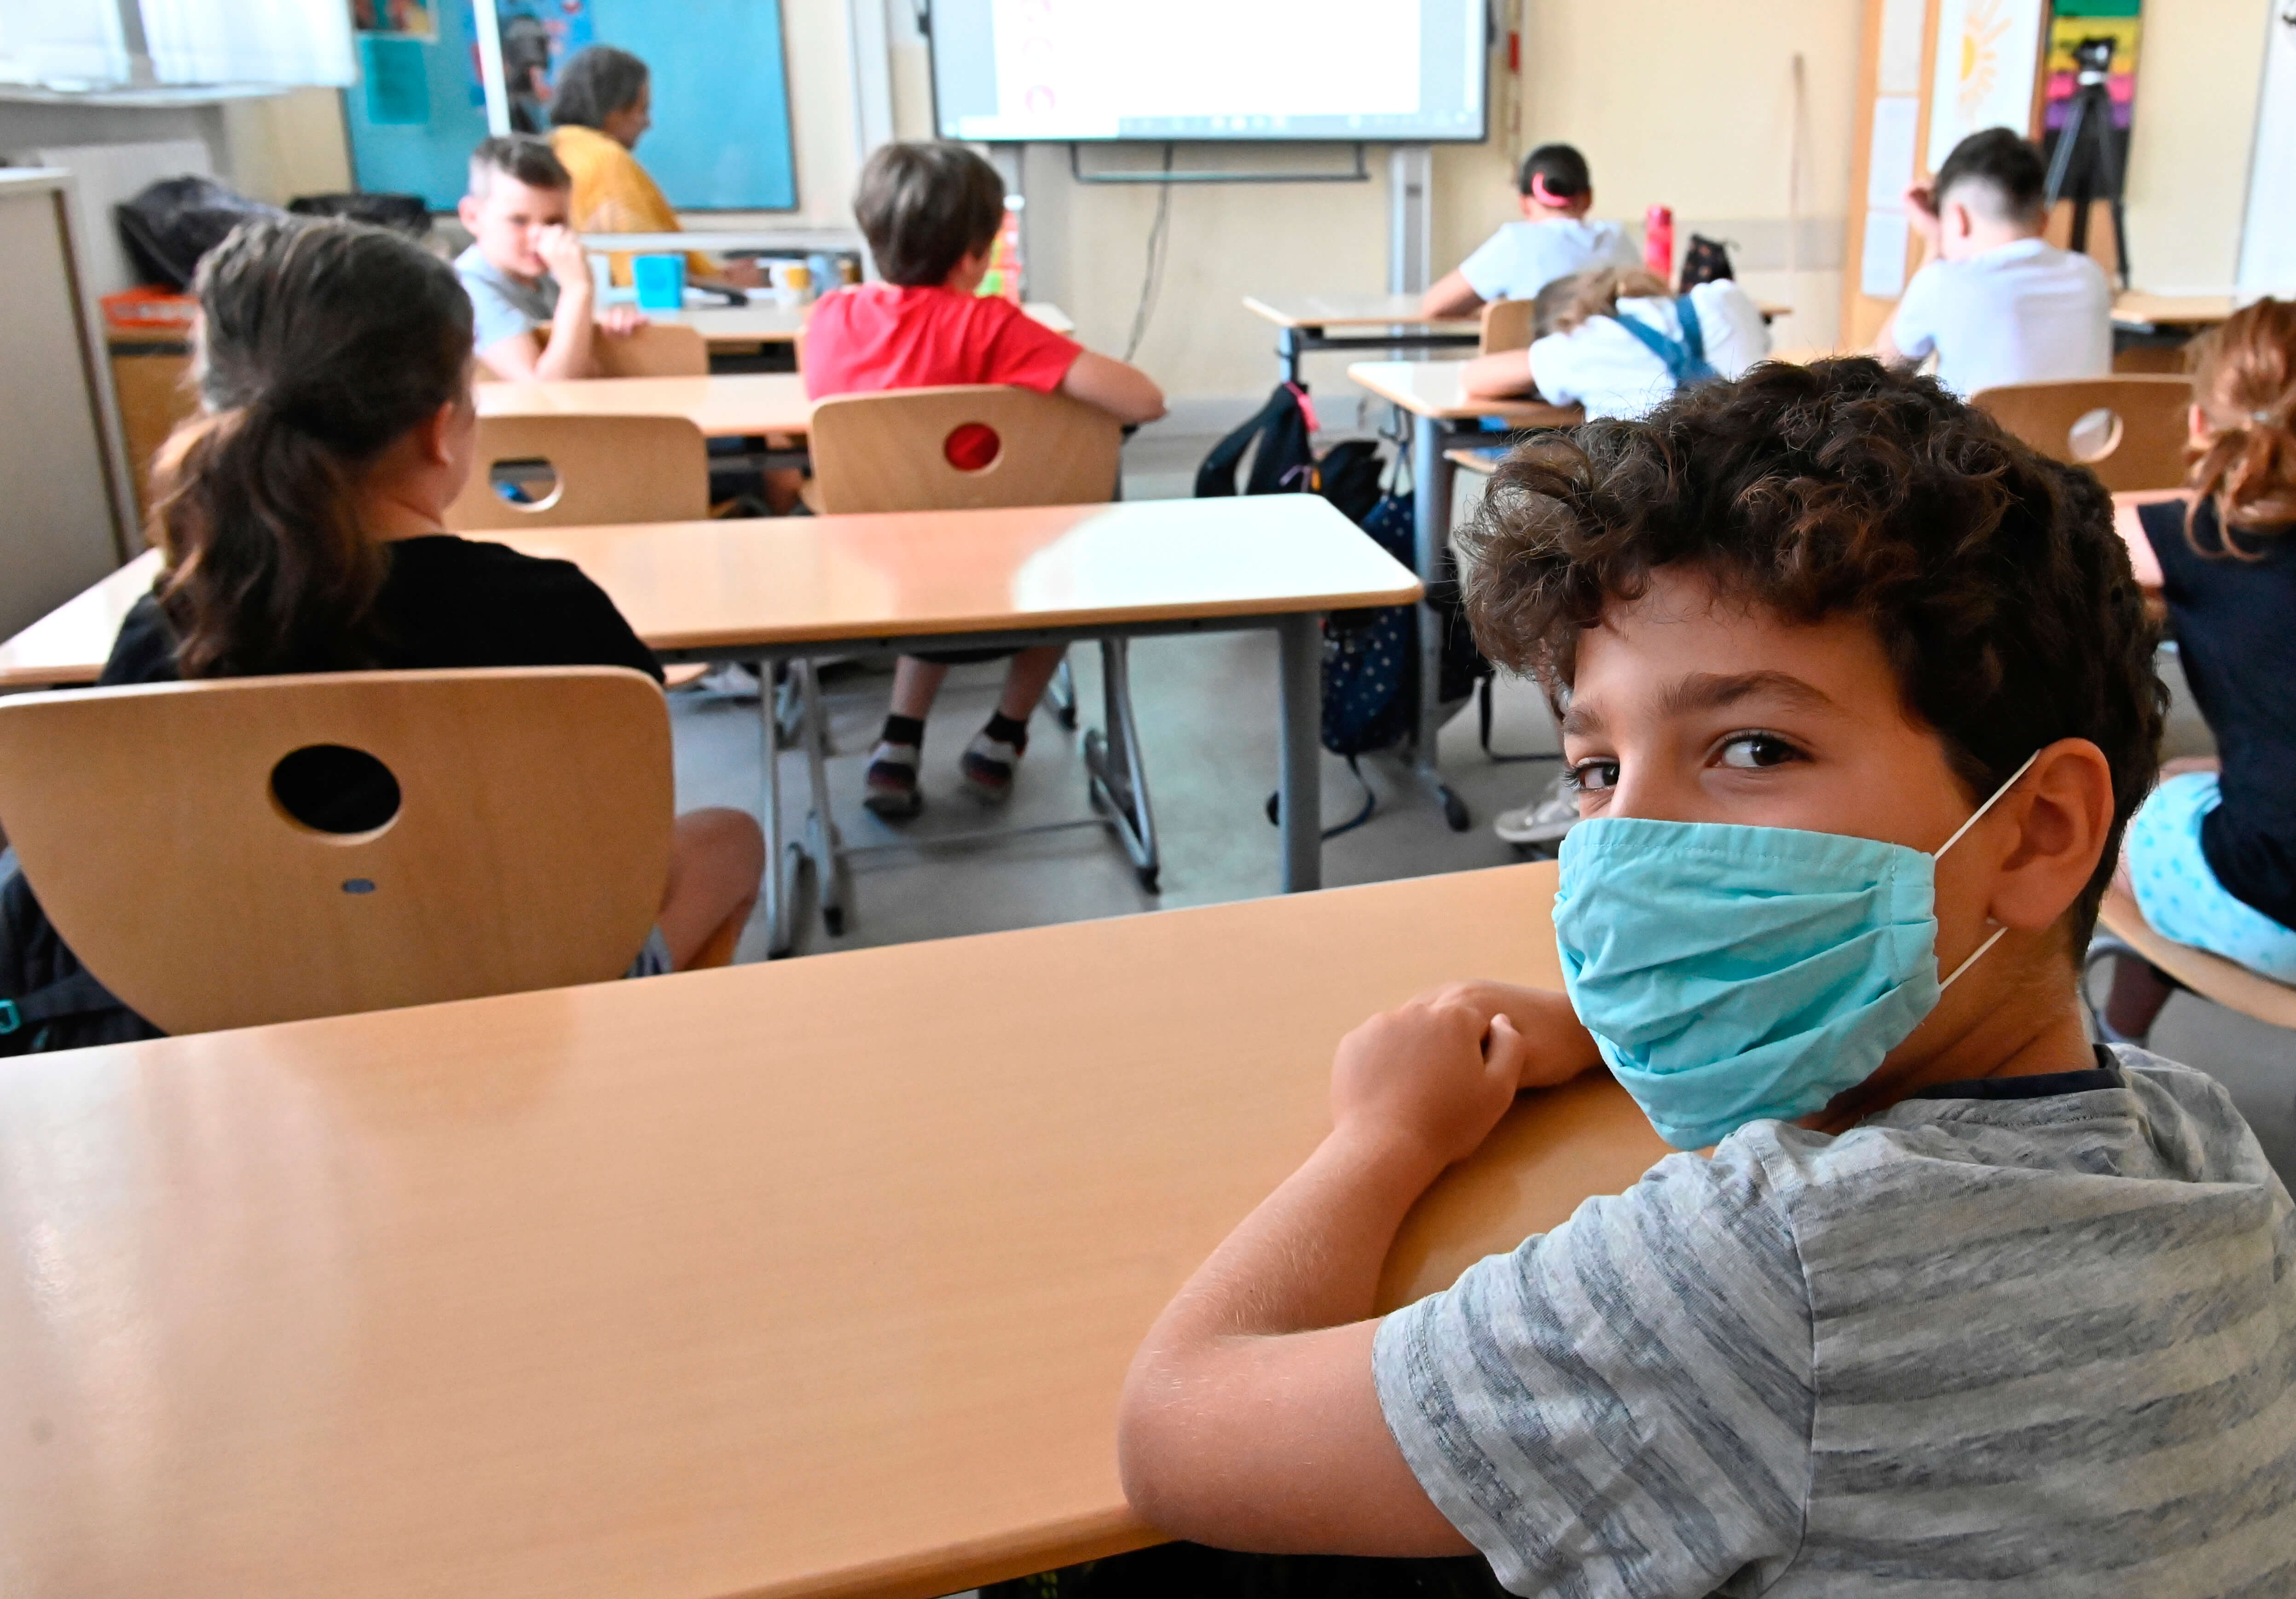 German school provides 90% safe air using DIY ventilation system